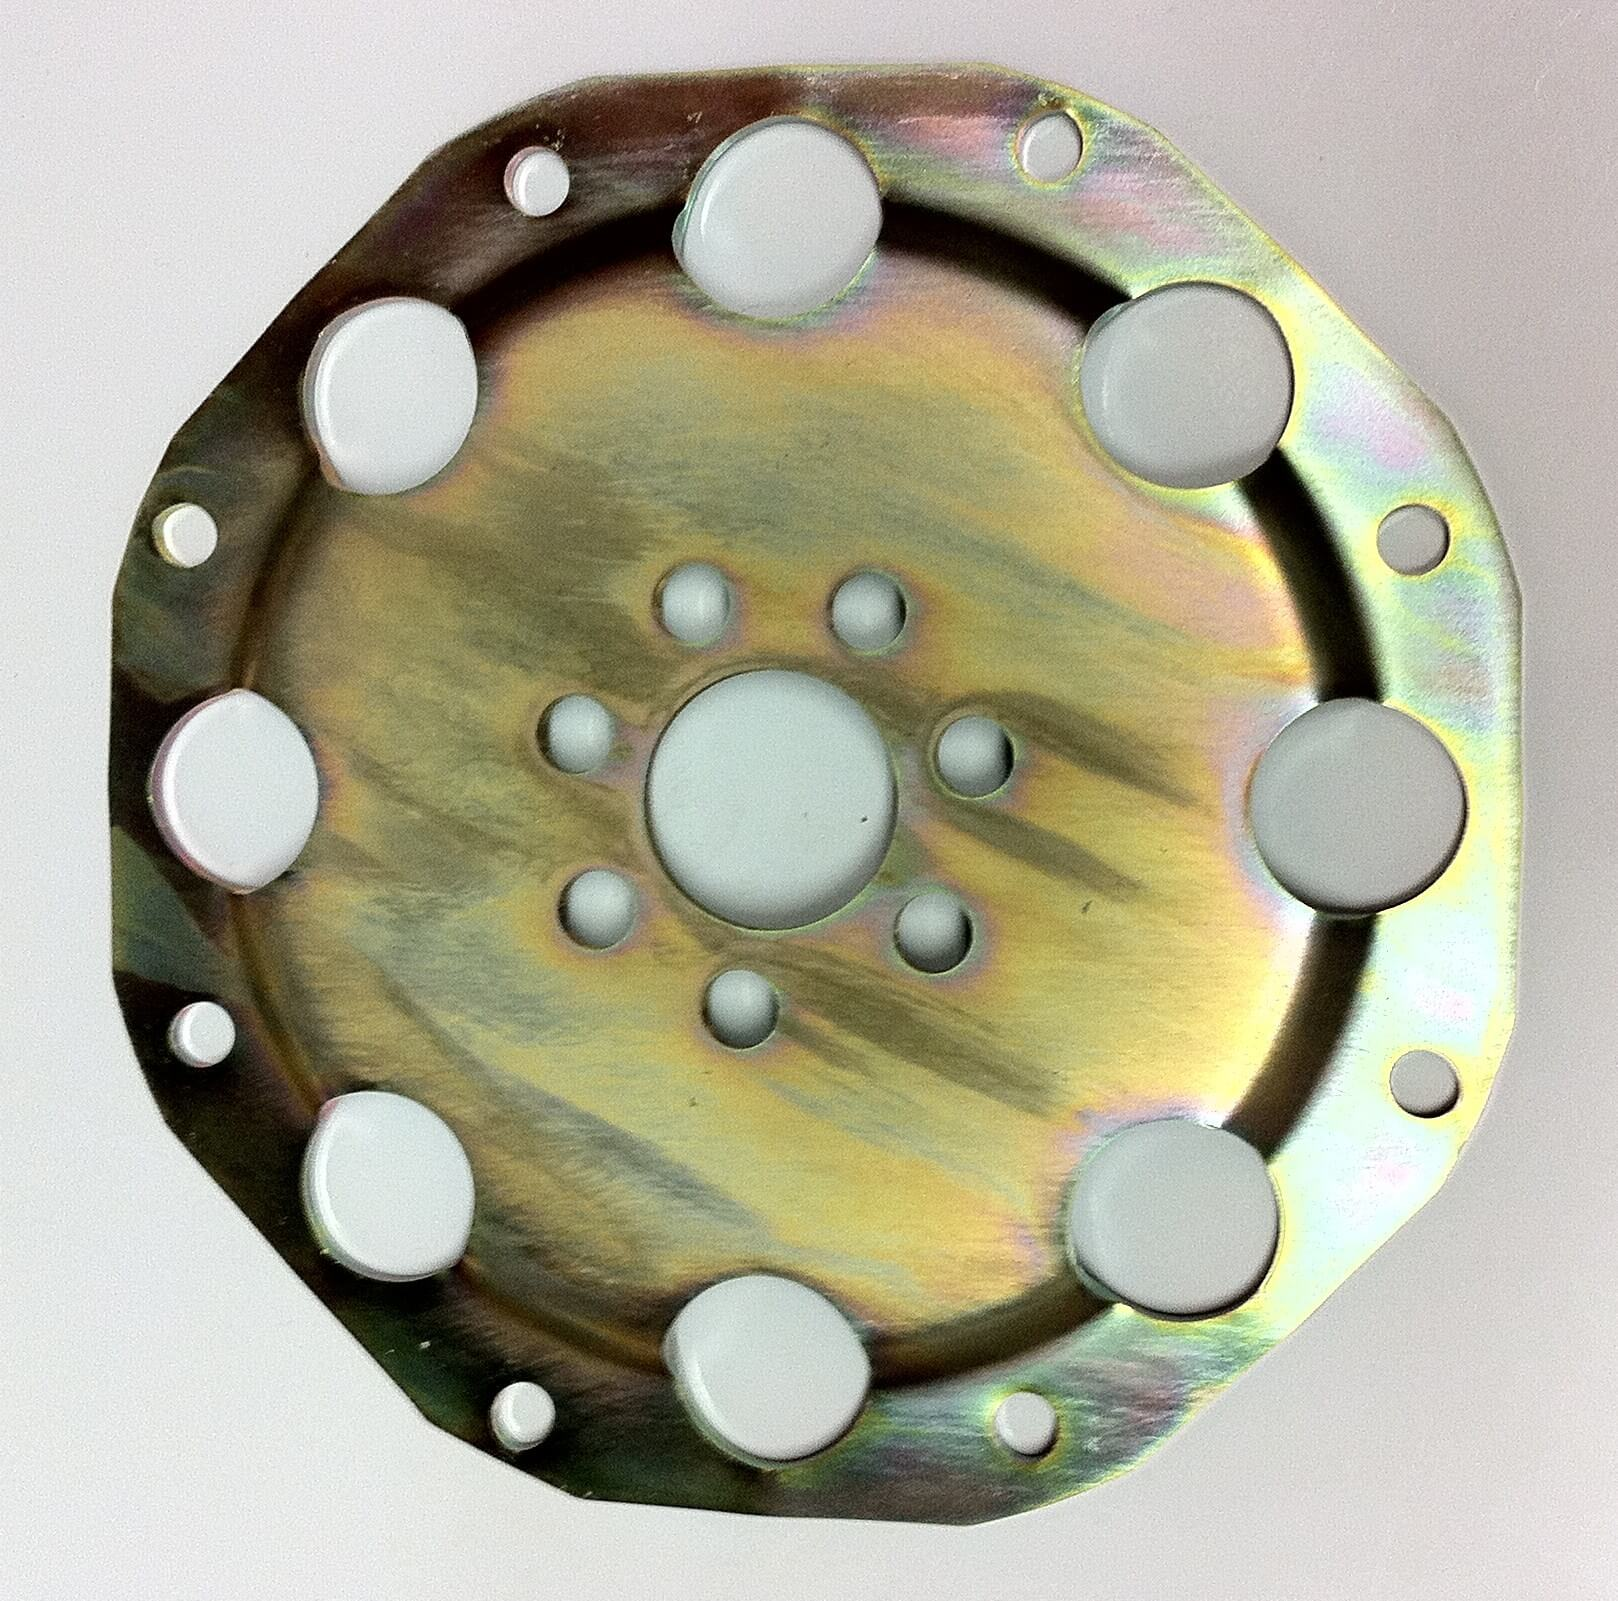 Kiggly Racing 7 Bolt Flex Plate